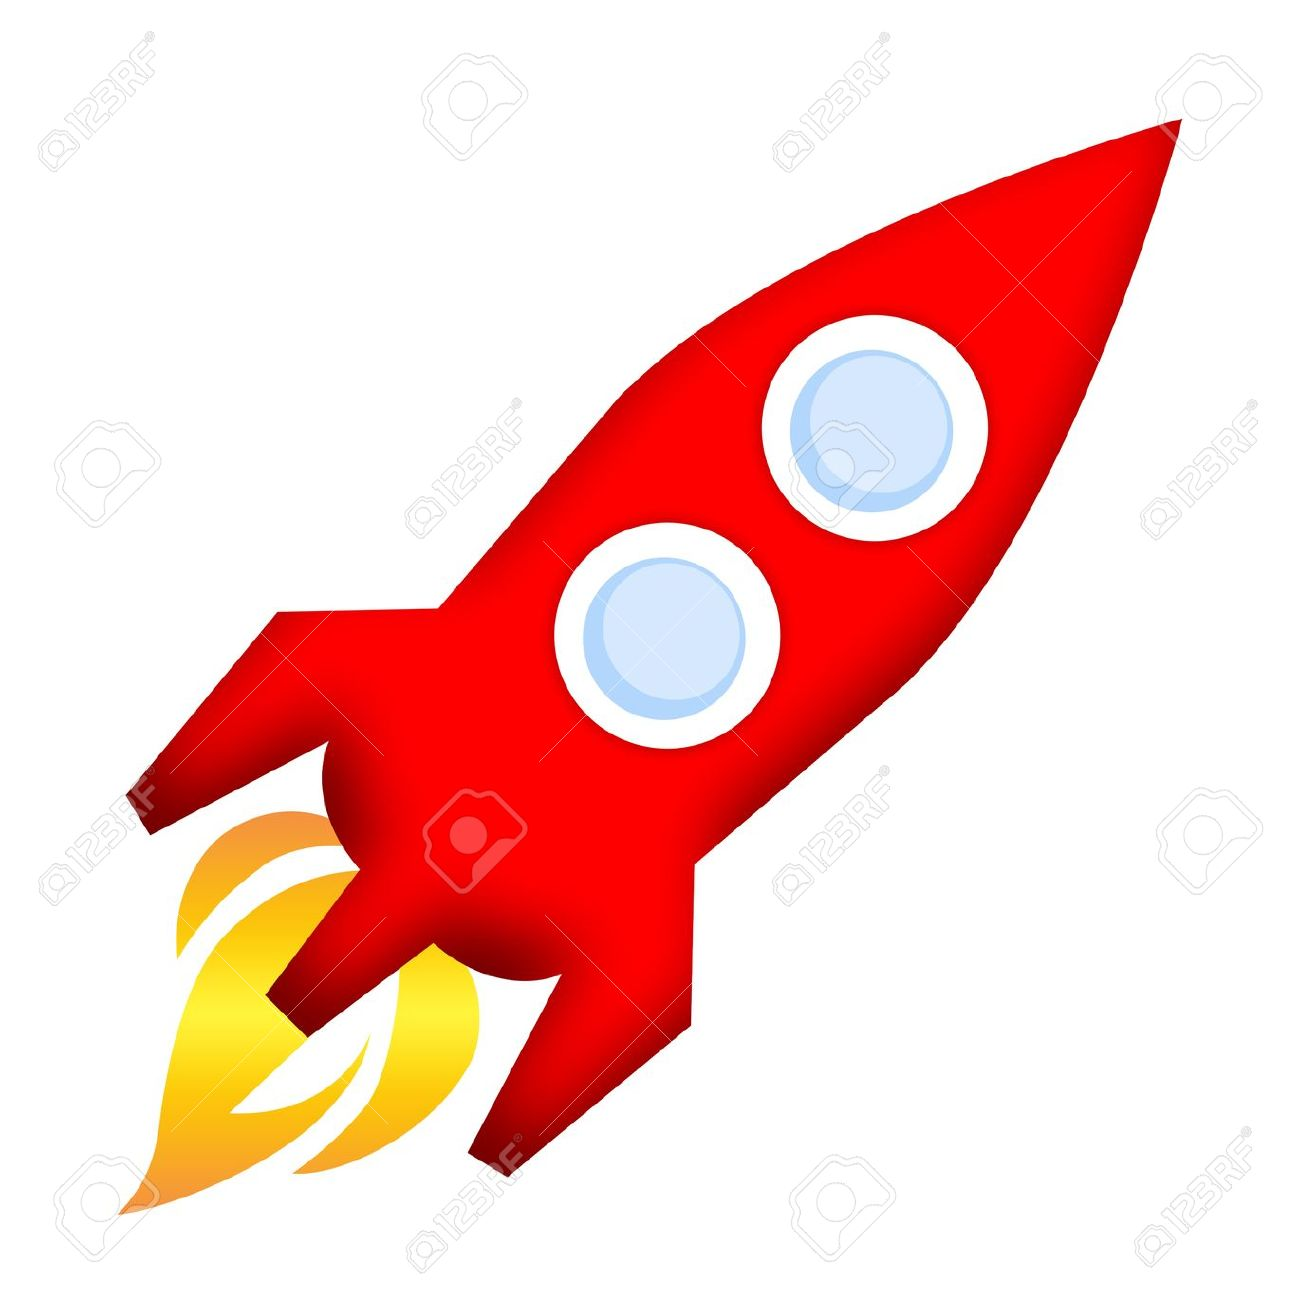 Rocket Images | Free download on ClipArtMag